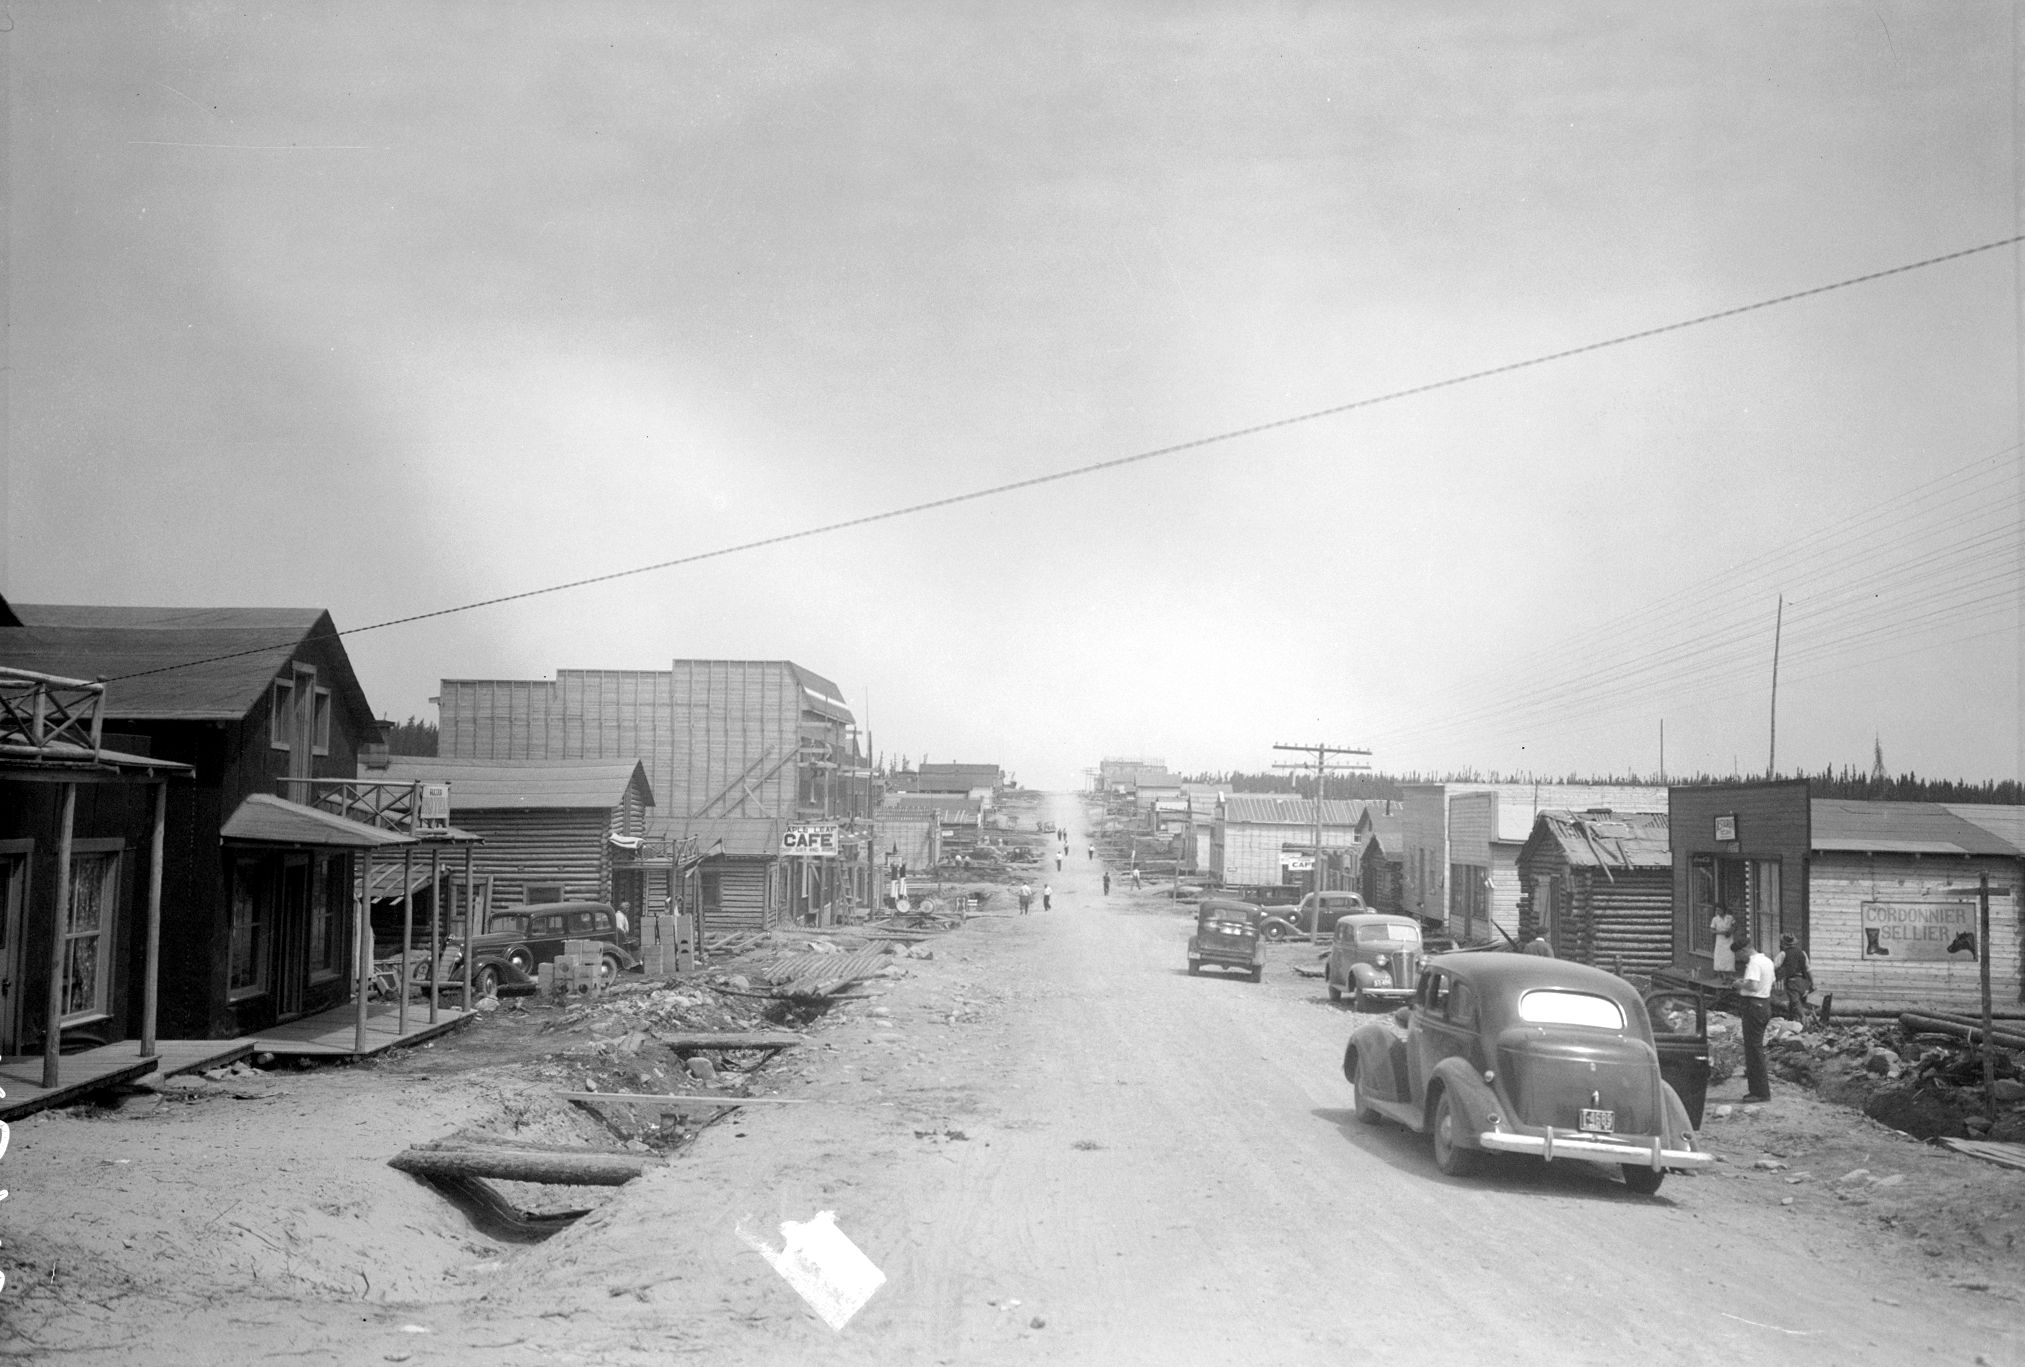 """Black and white photograph of a gravel road lined with plant and log buildings. On the right, signs """"Paris Cafe"""" and """"Royal Restaurant"""". In the foreground on the right, the front ends of two cars."""